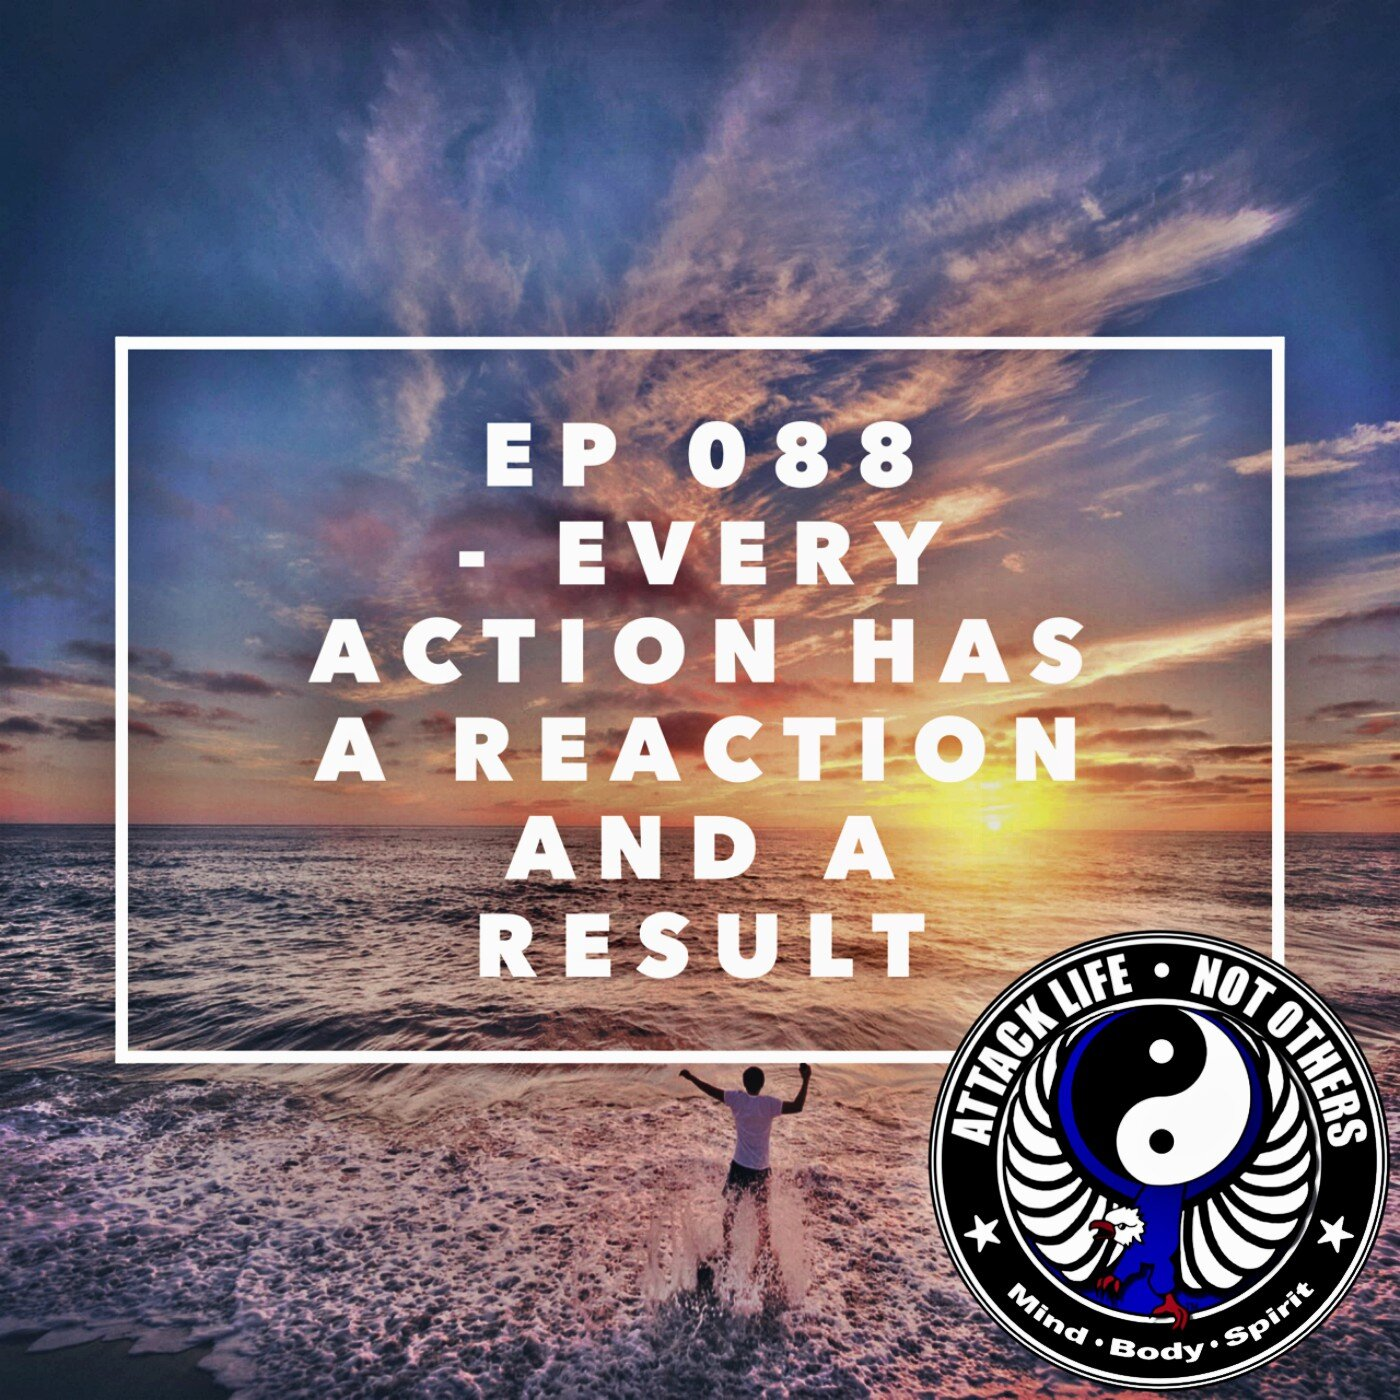 epEp 088 - Every Action Has a Reaction and a Result